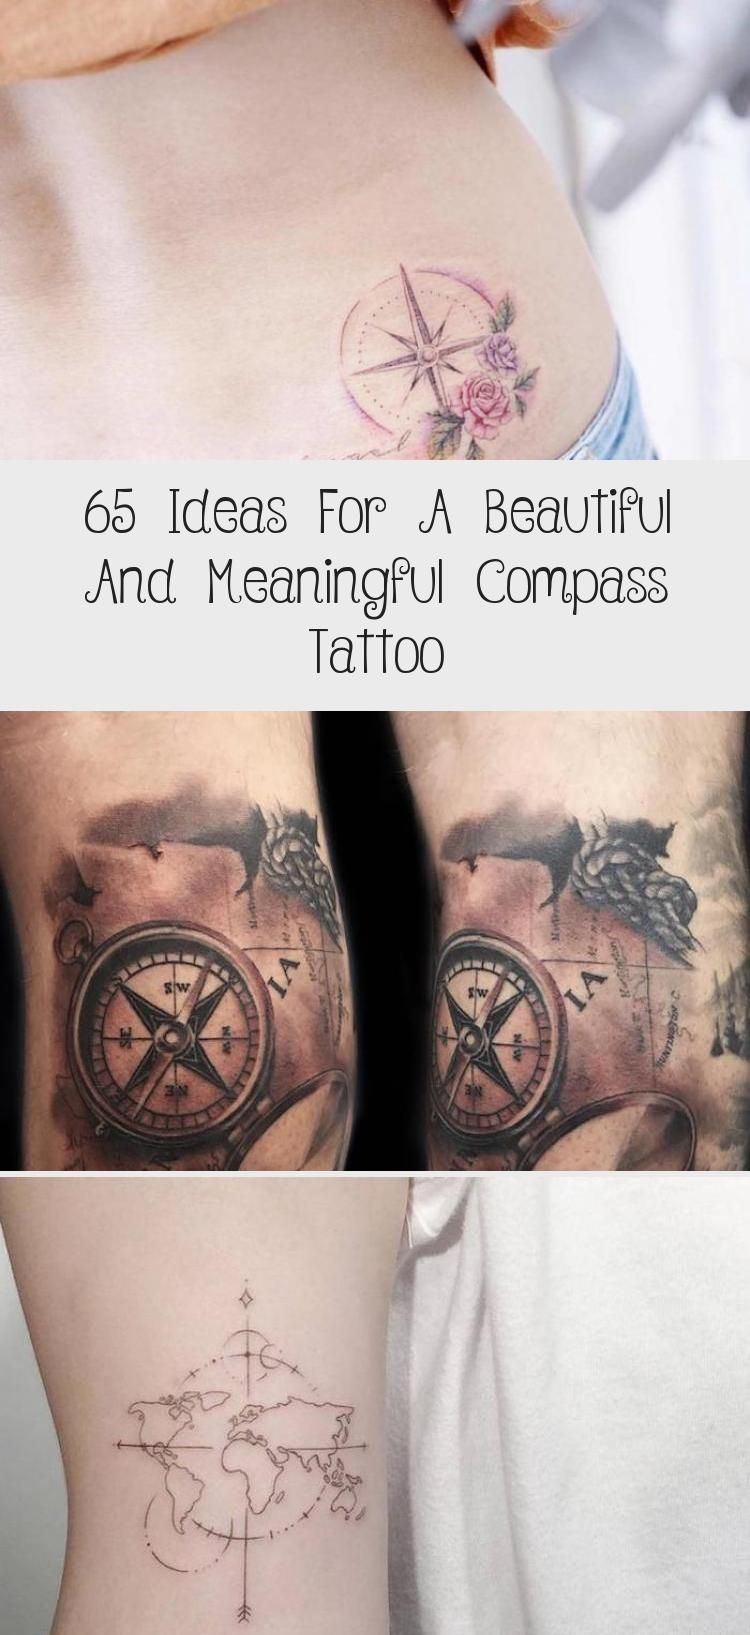 black and white photo compass tattoo meaning wolf tattoo forearm tattoo geom  black and white photo compass tattoo meaning wolf tattoo forearm tattoo geometric design